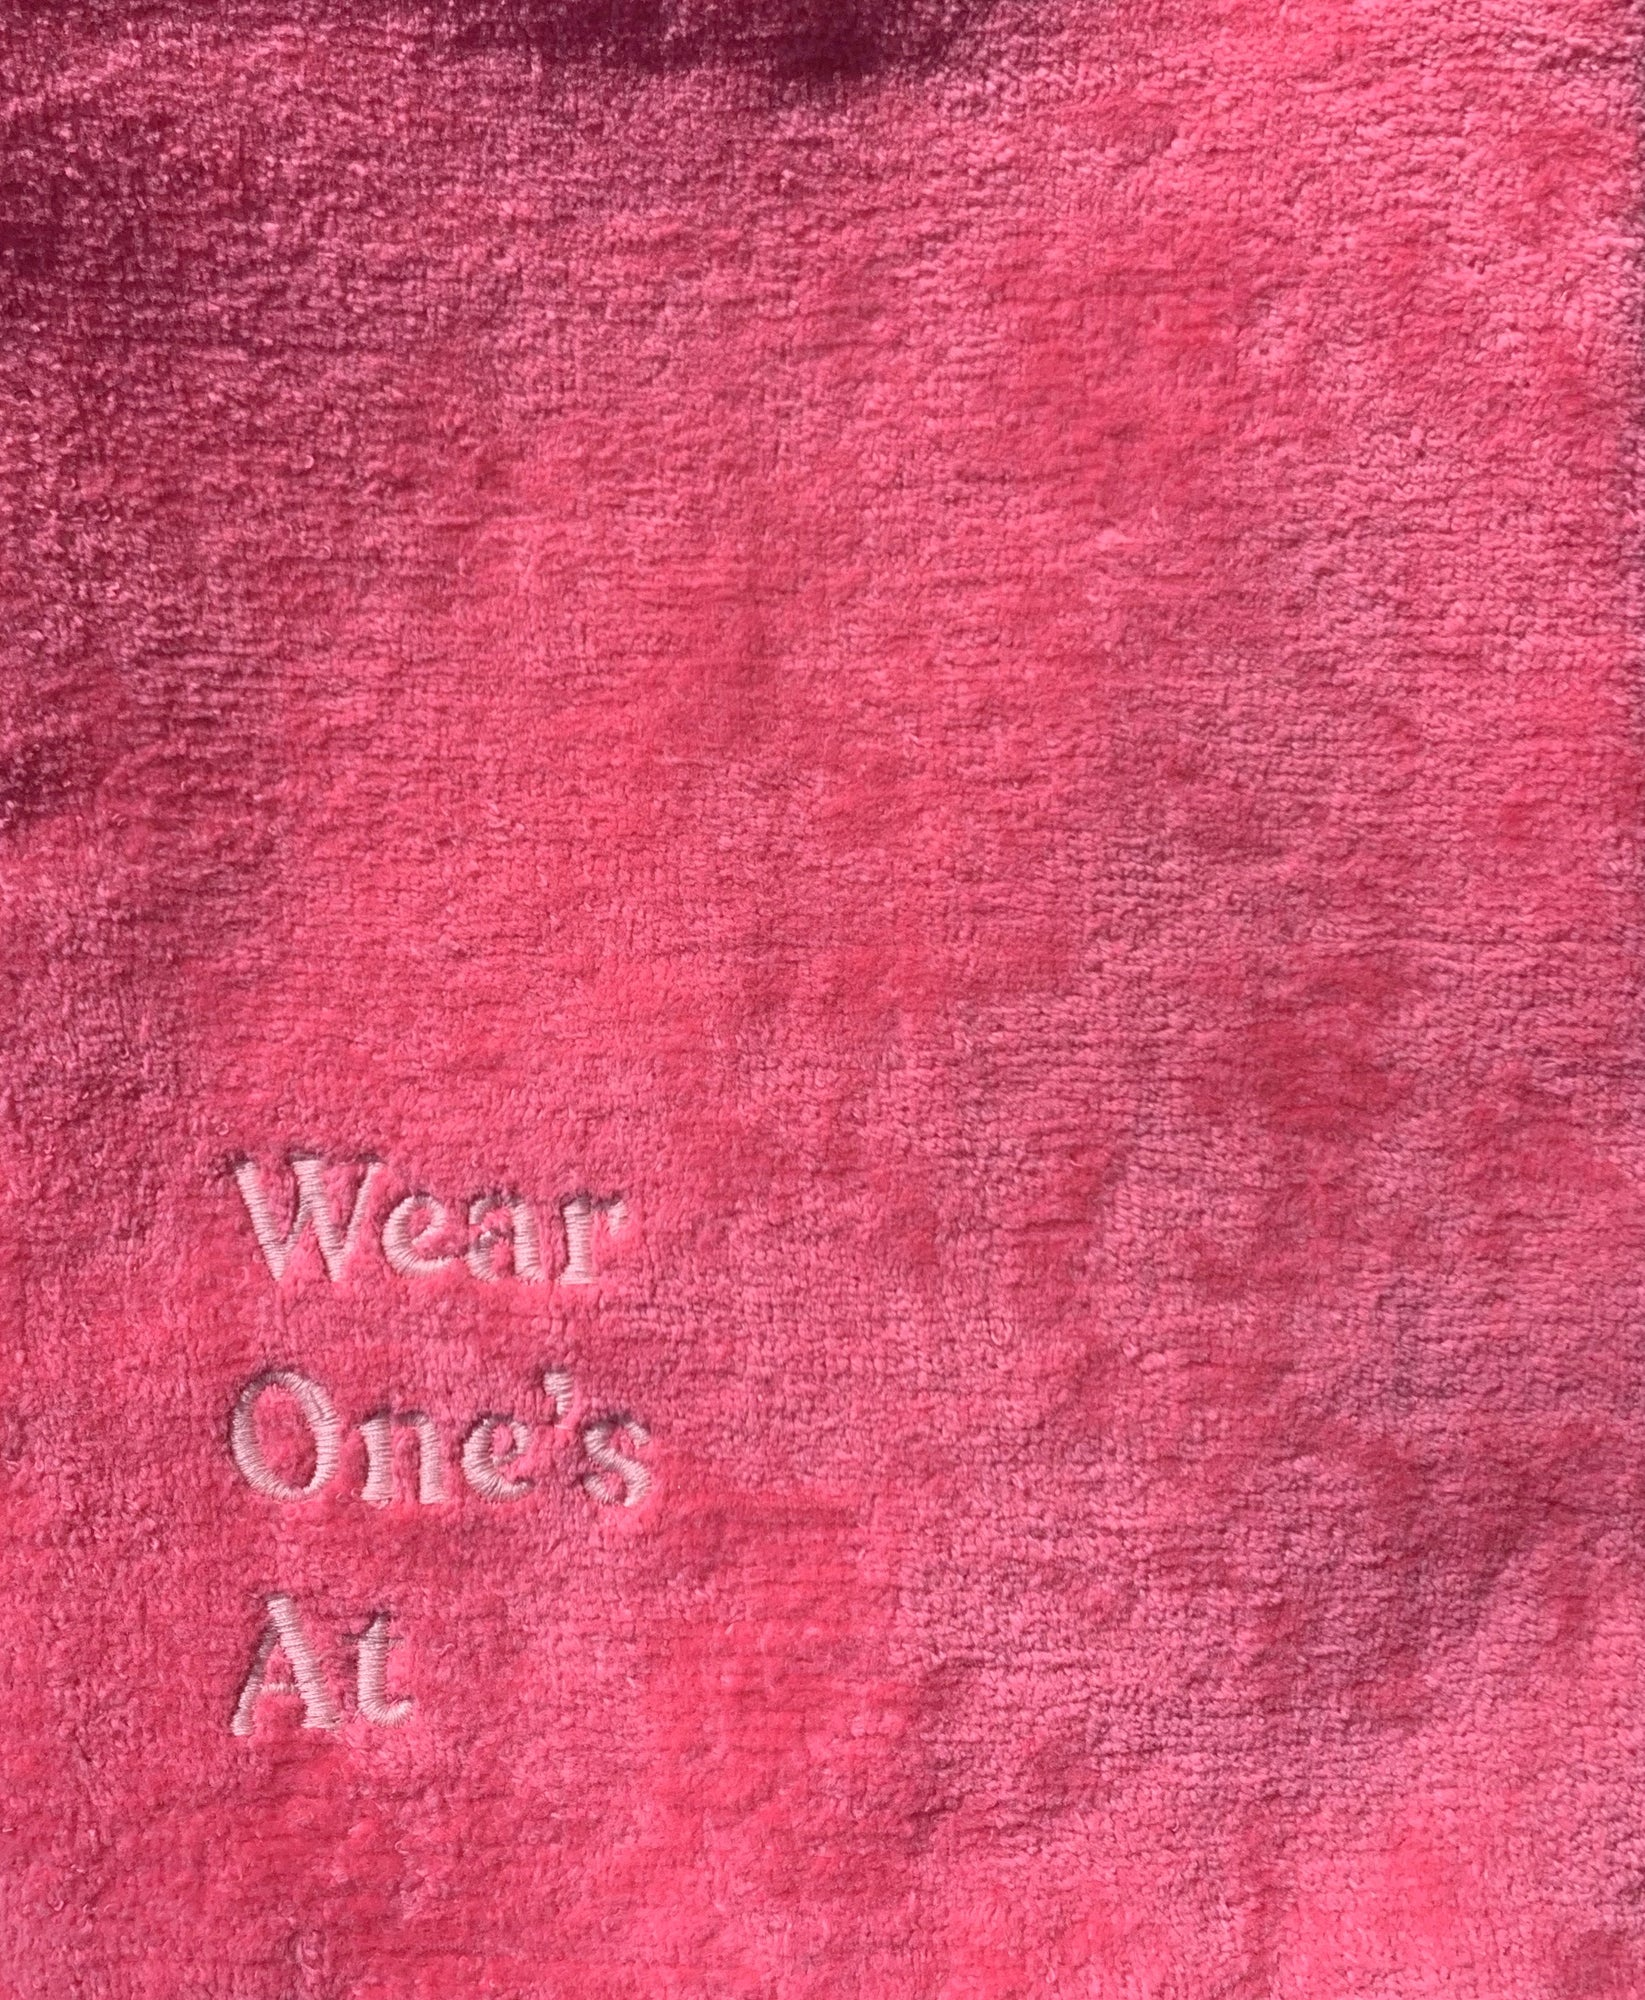 Wear One's At Logo Sport Towel in Punch Pink Detail View